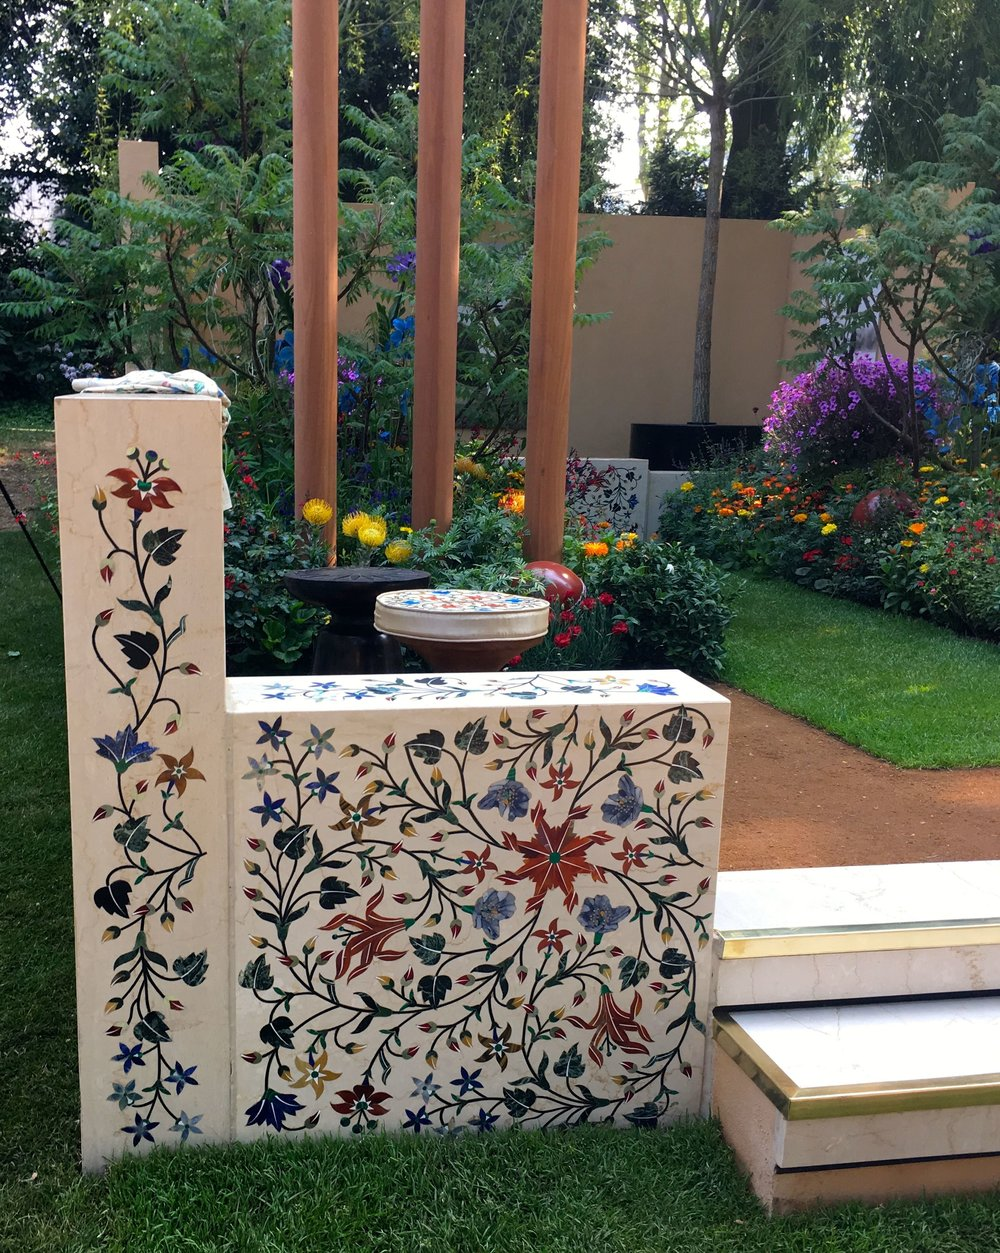 A billion dreams - the artisan garden by the British Council at the Chelsea Flower show